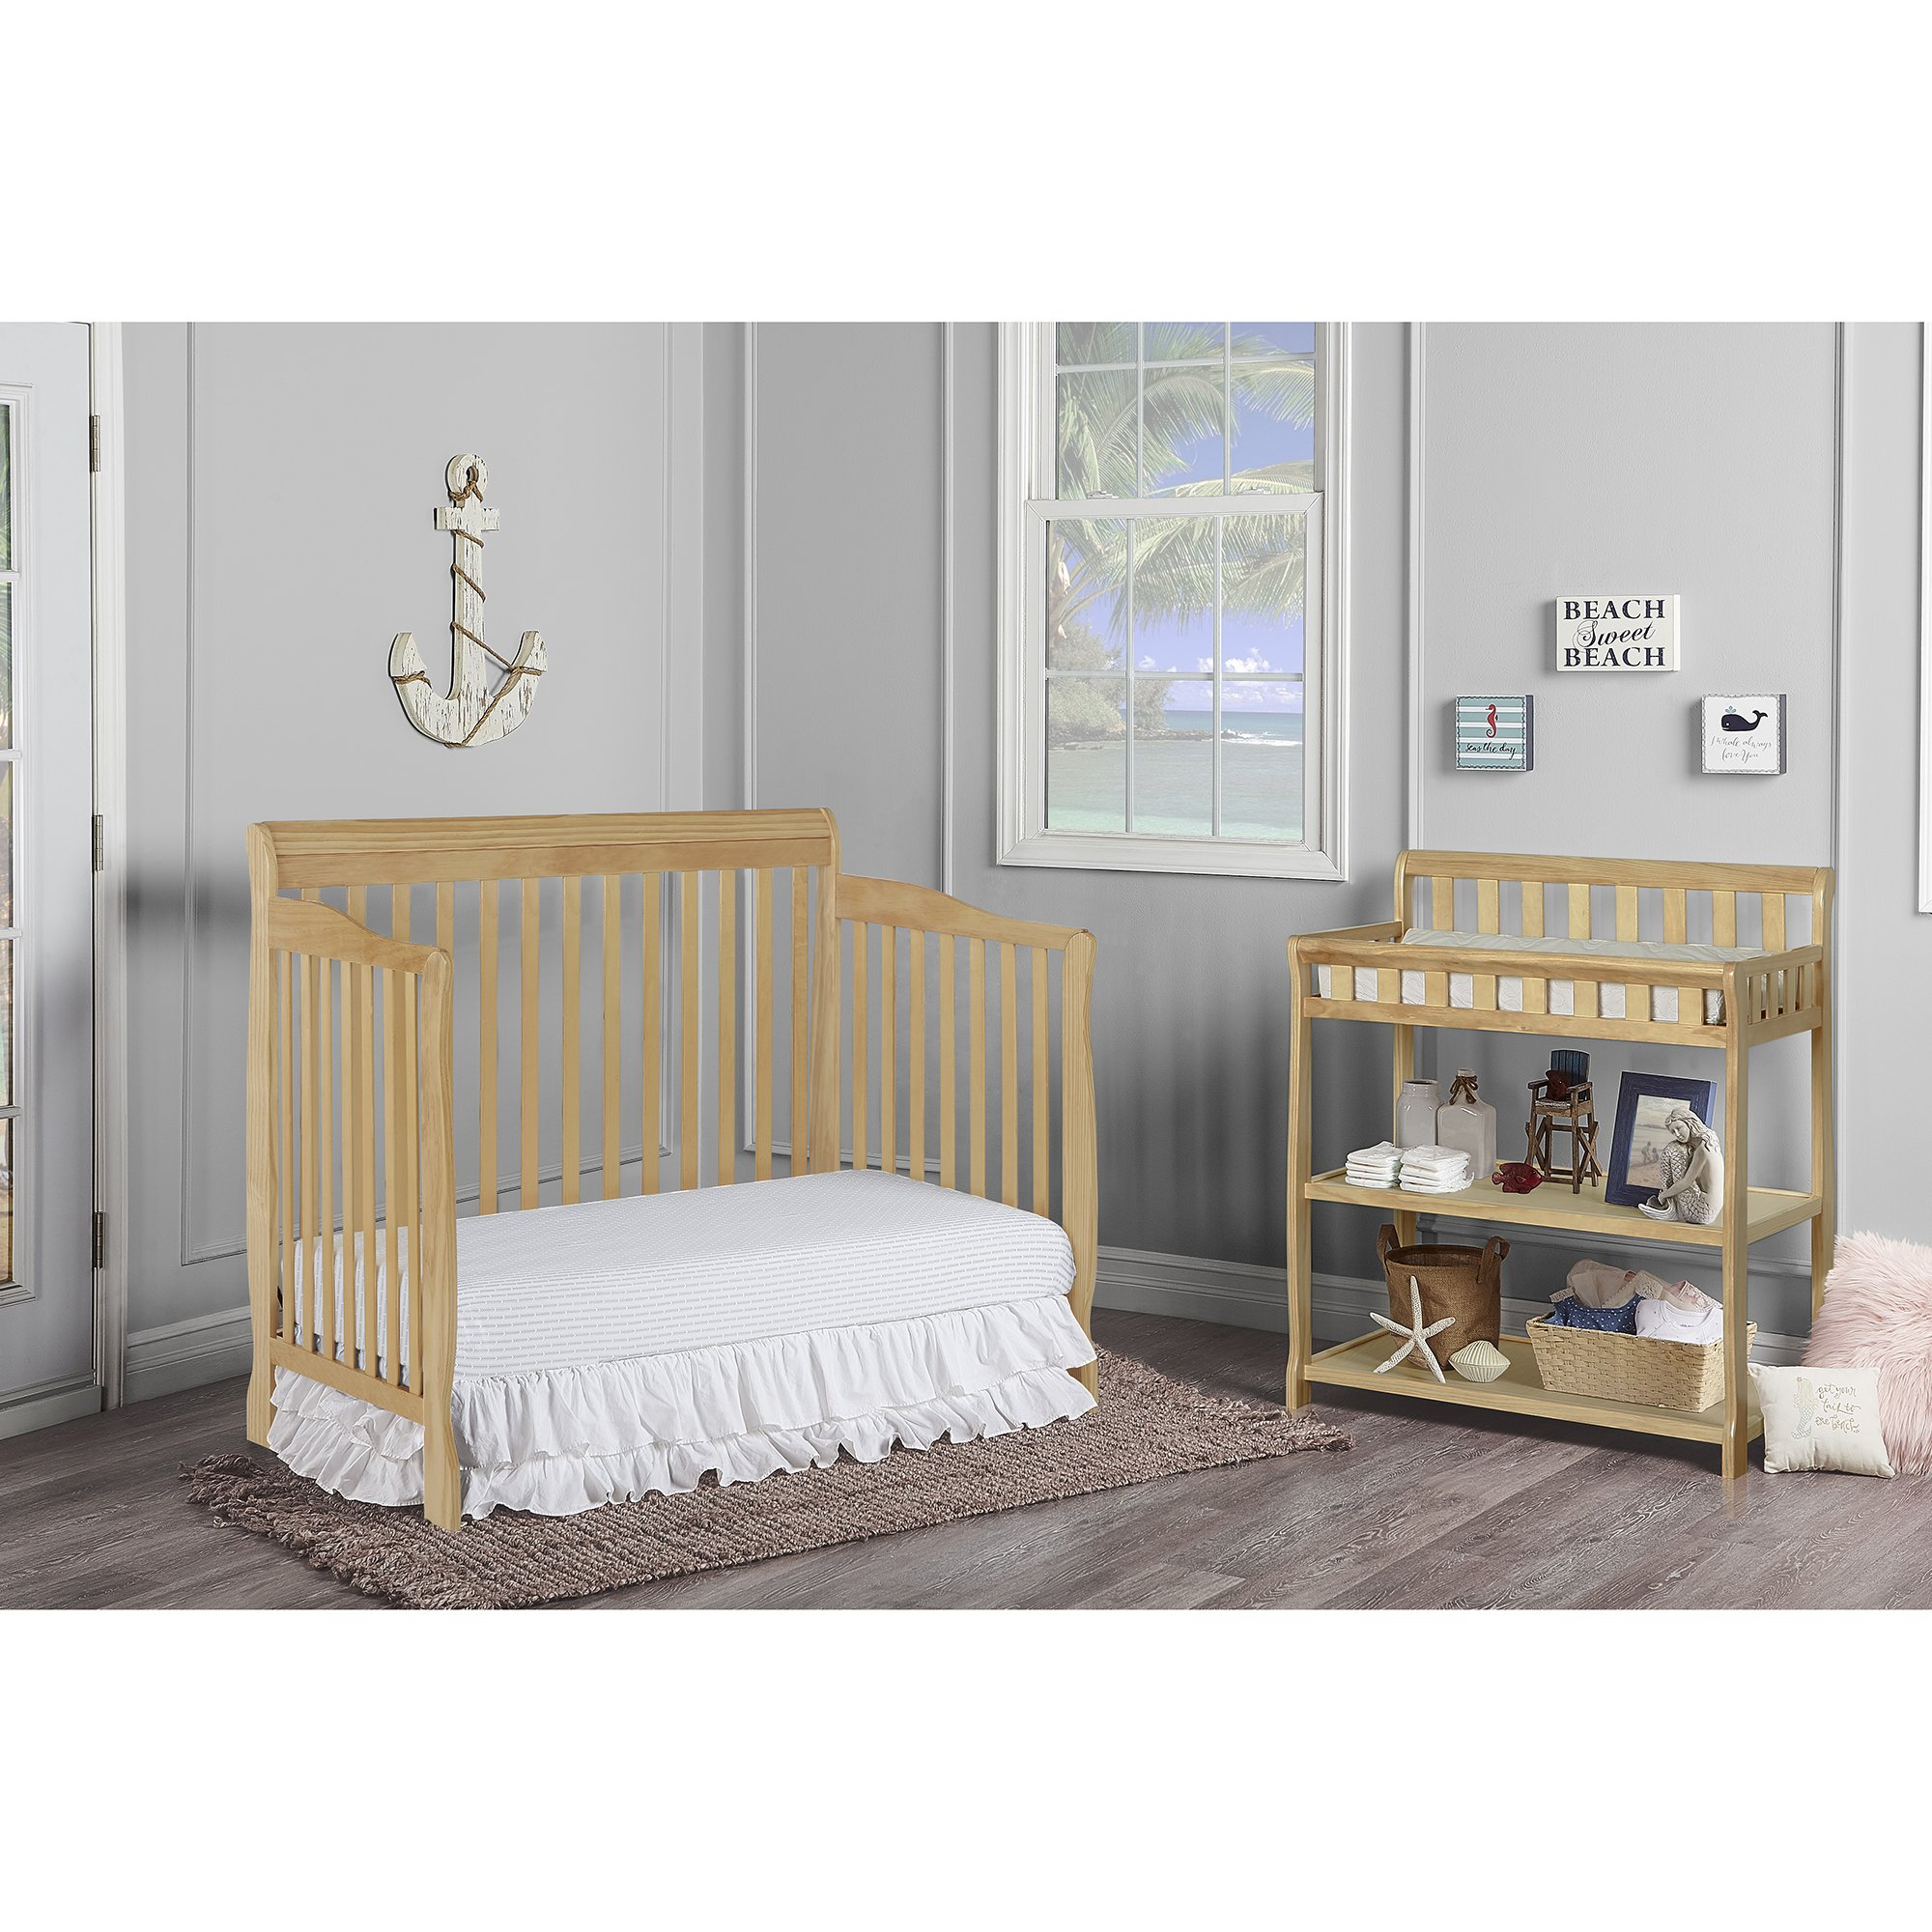 Dream On Me Ashton 5 in 1 Convertible Crib, Natural by Dream On Me (Image #5)